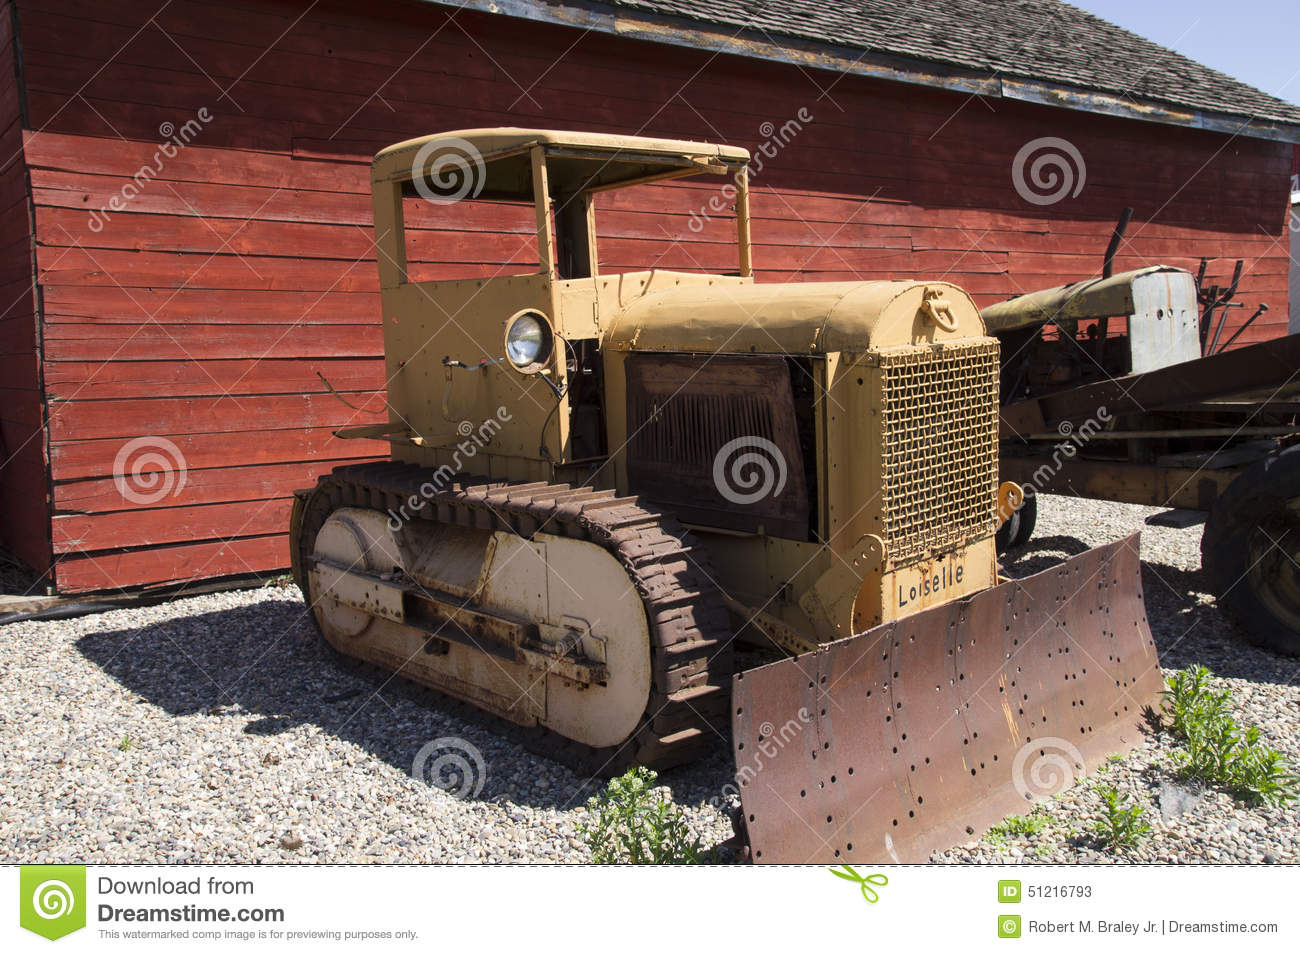 Download Vintage Military Dozier WWII Alaska Highway Editorial Stock Photo - Image of vintage, military: 51216793